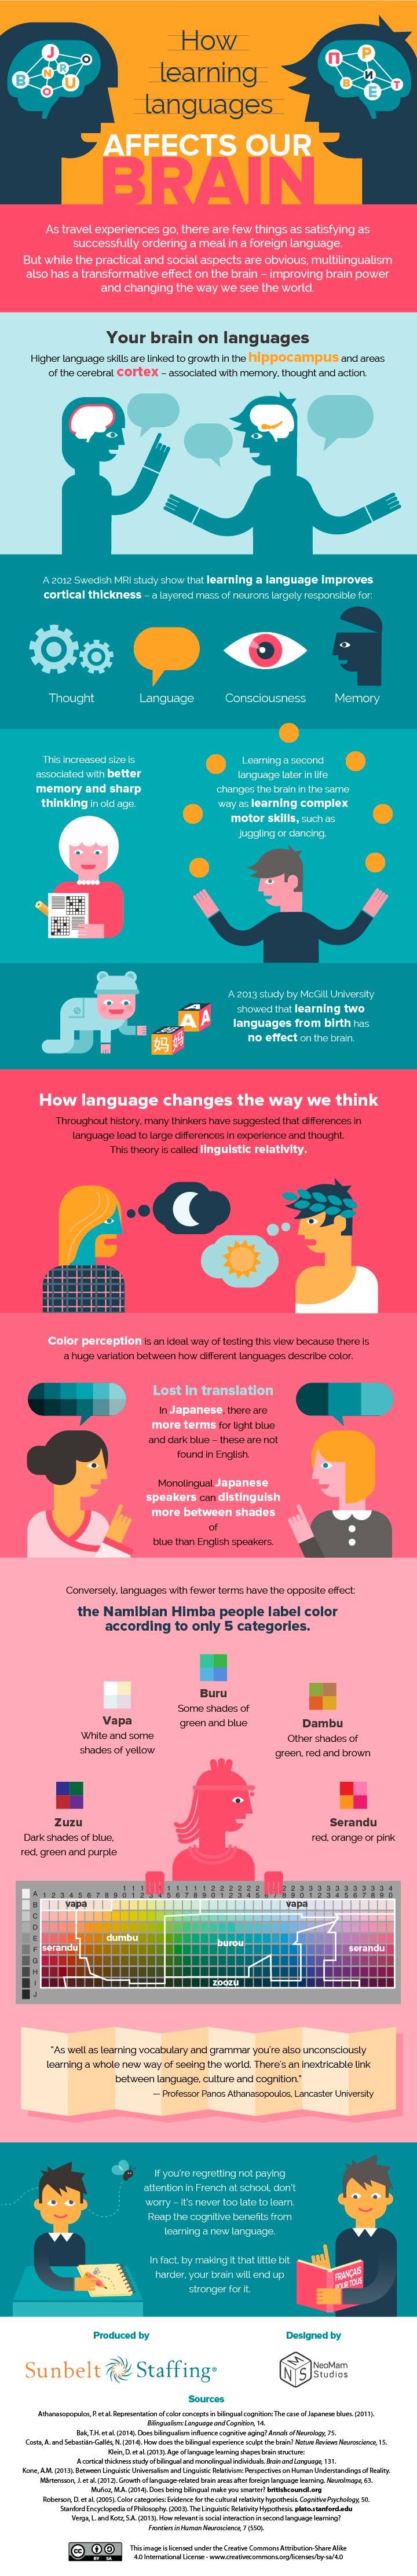 how-learning-languages-affects-our-brain-infographic